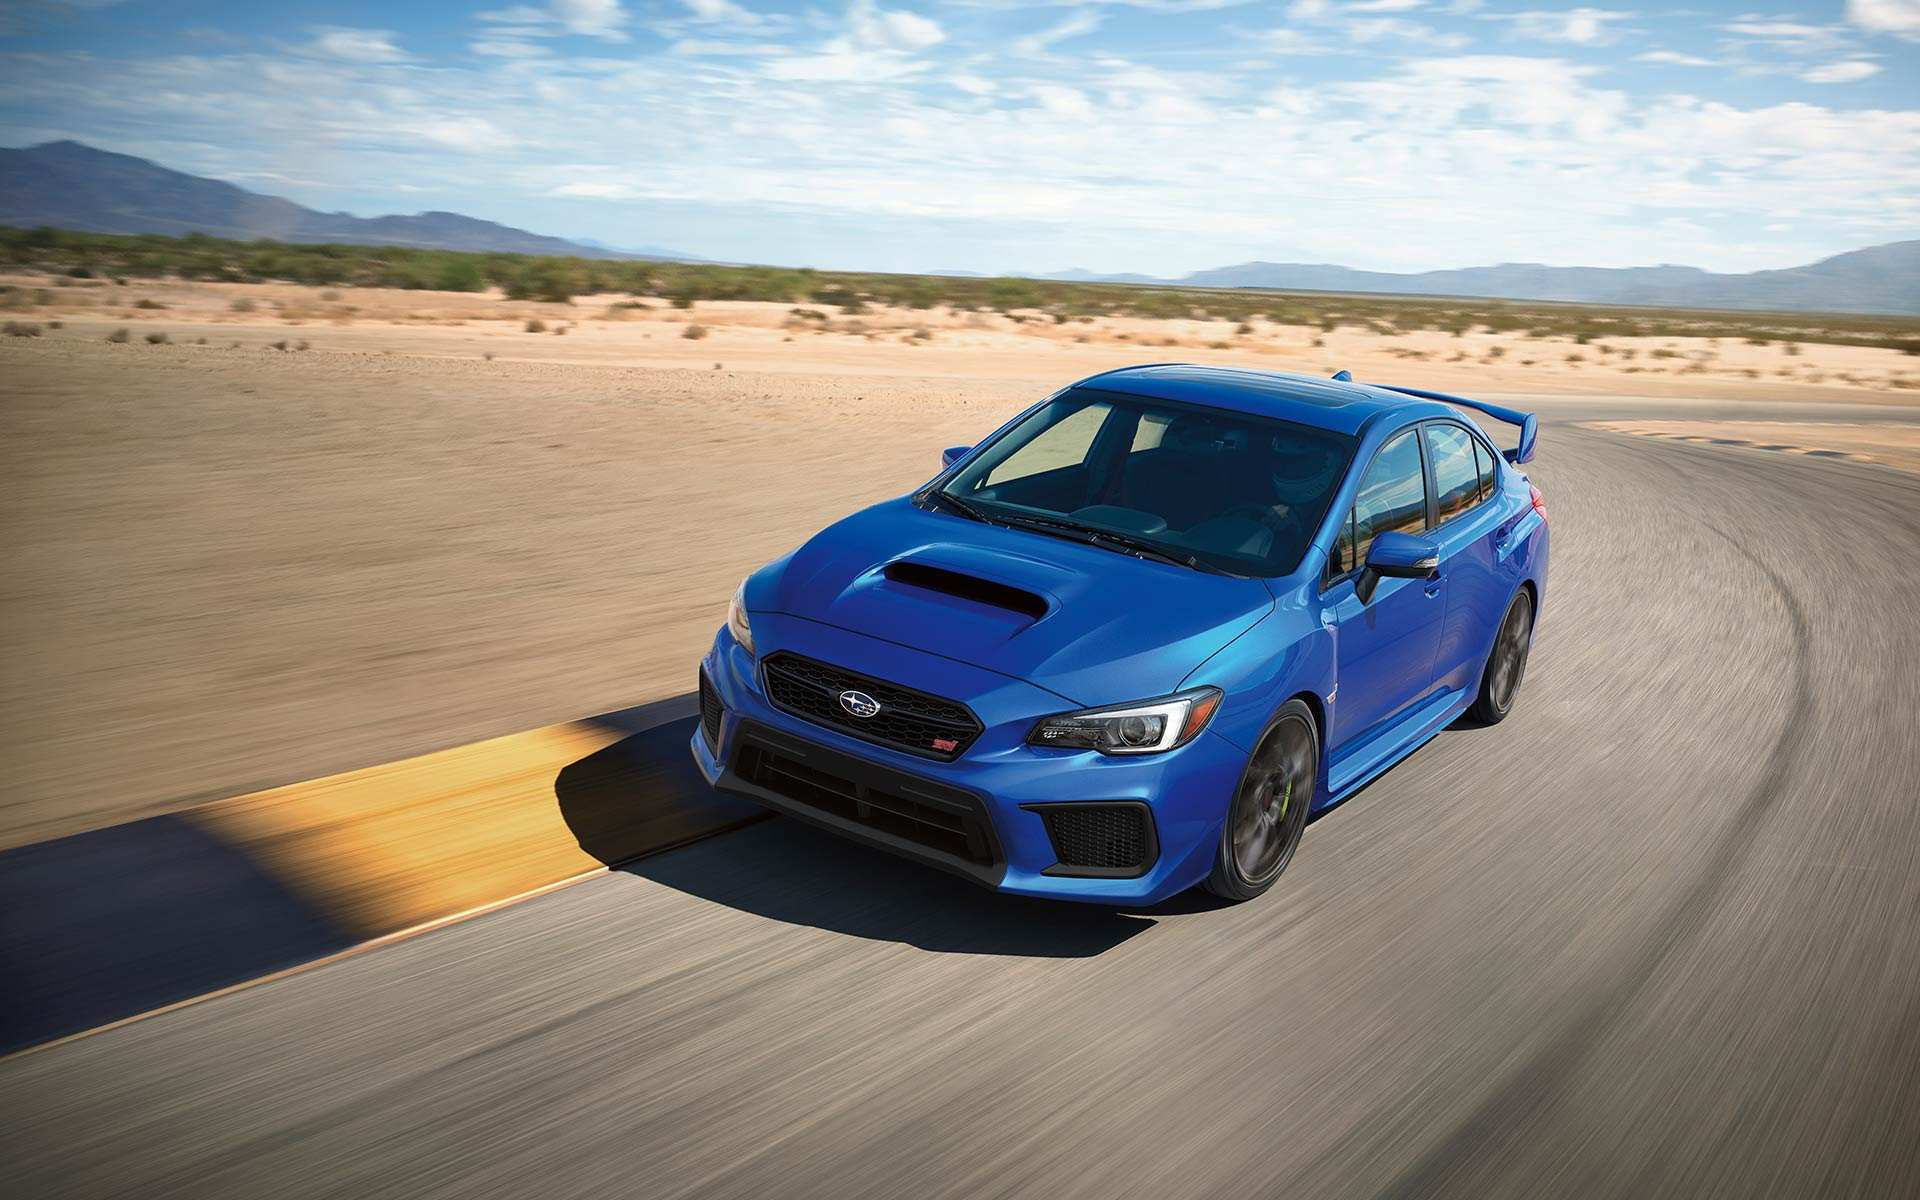 54 All New 2019 Subaru Impreza Wrx Prices